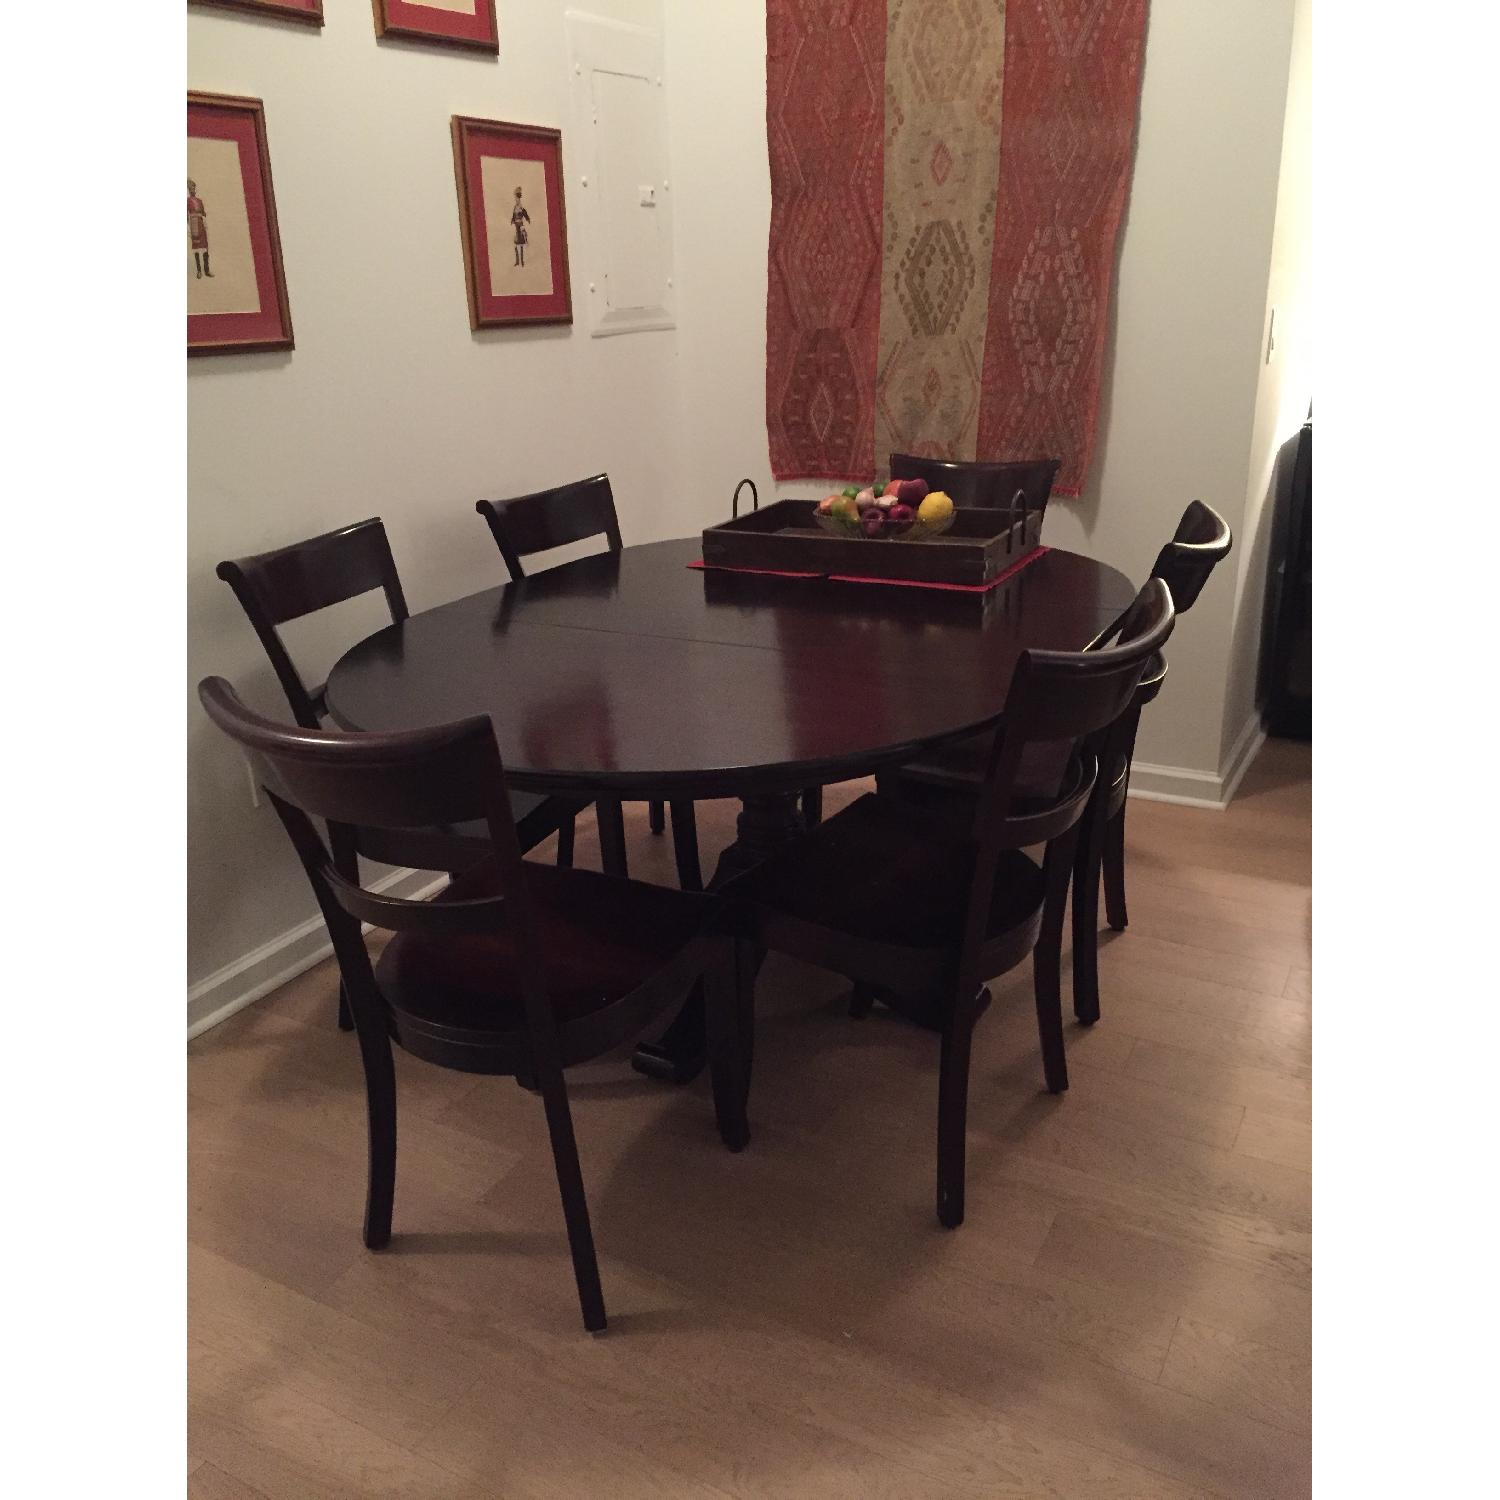 Crate & Barrel Dining Room Table w/ 6 Chairs - image-4